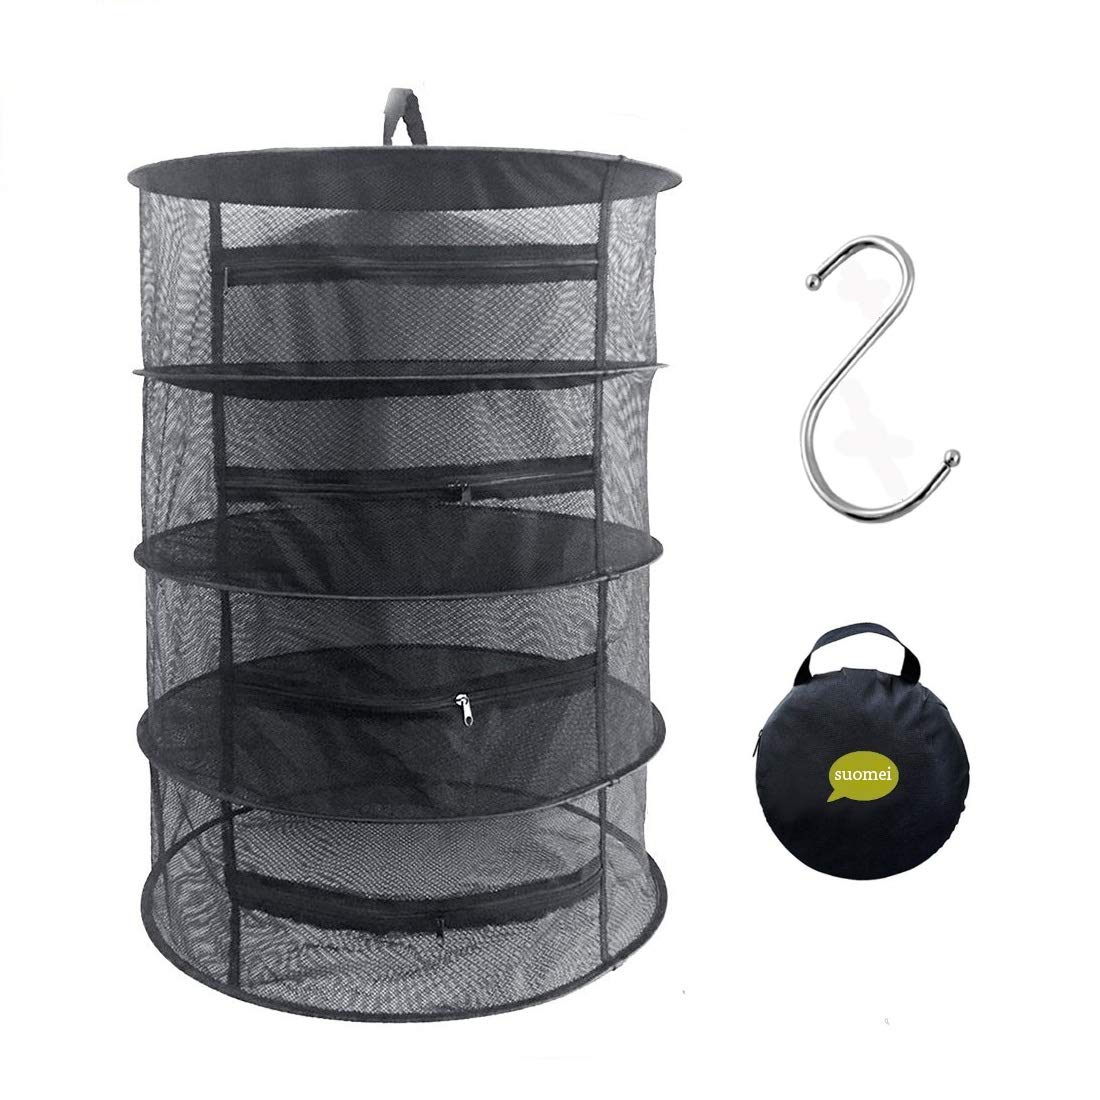 SUOMEI 4 Layer Mesh Hanging Herb Drying Rack Dry Net with Zippers,Gift to S Hang Buckle and Storage Bag,Black by SUOMEI